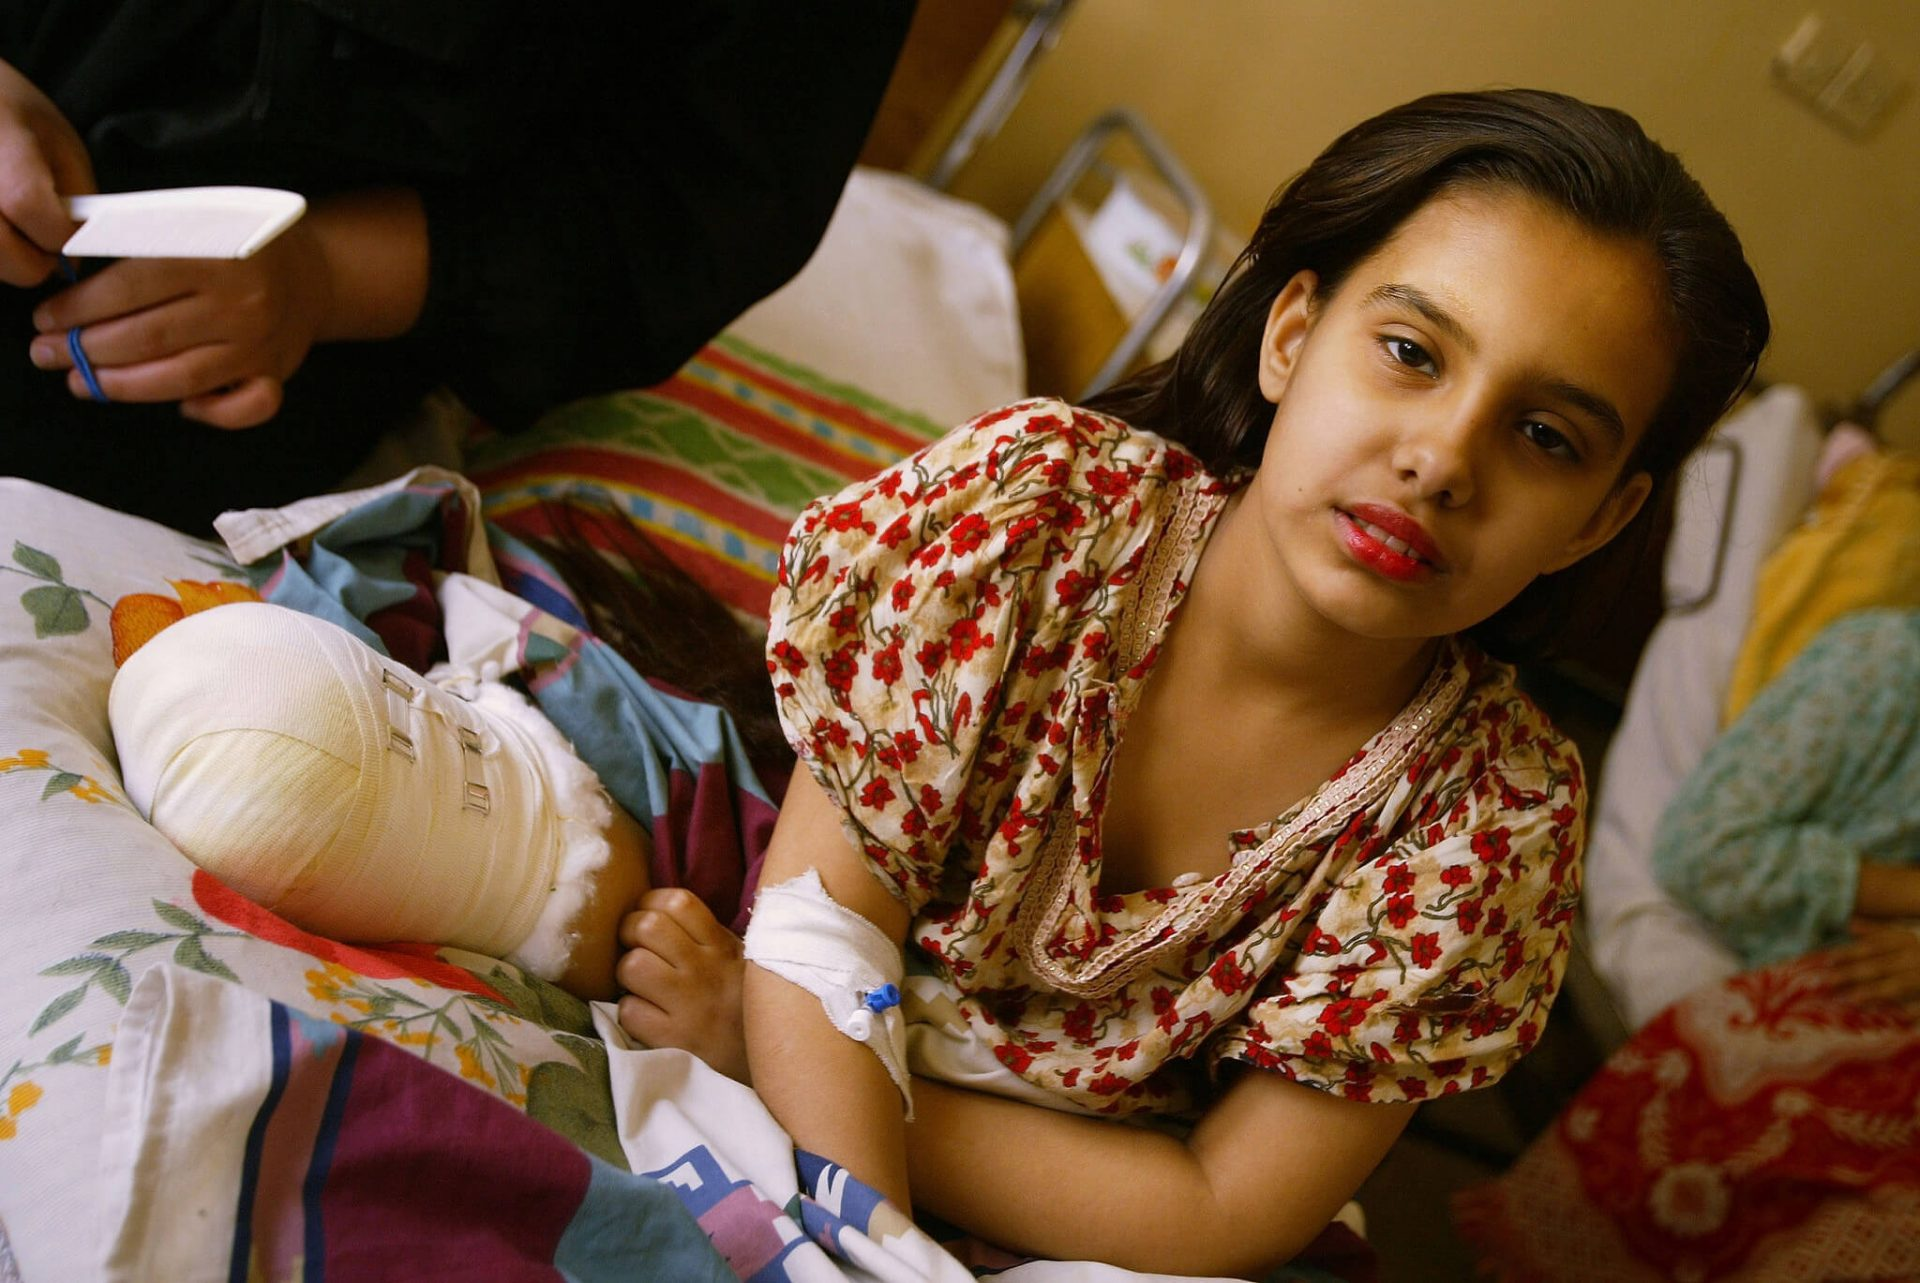 BAGHDAD, IRAQ - APRIL 24: Saf'aa Ahmed, 11, sits with the remainder of her right leg propped up at a hospital April 24, 2003 in Baghdad, Iraq. Saf'aa lost her left leg two weeks ago, from a missile attack on her neighborhood, according to her family. (Photo by Chris Hondros/Getty Images)